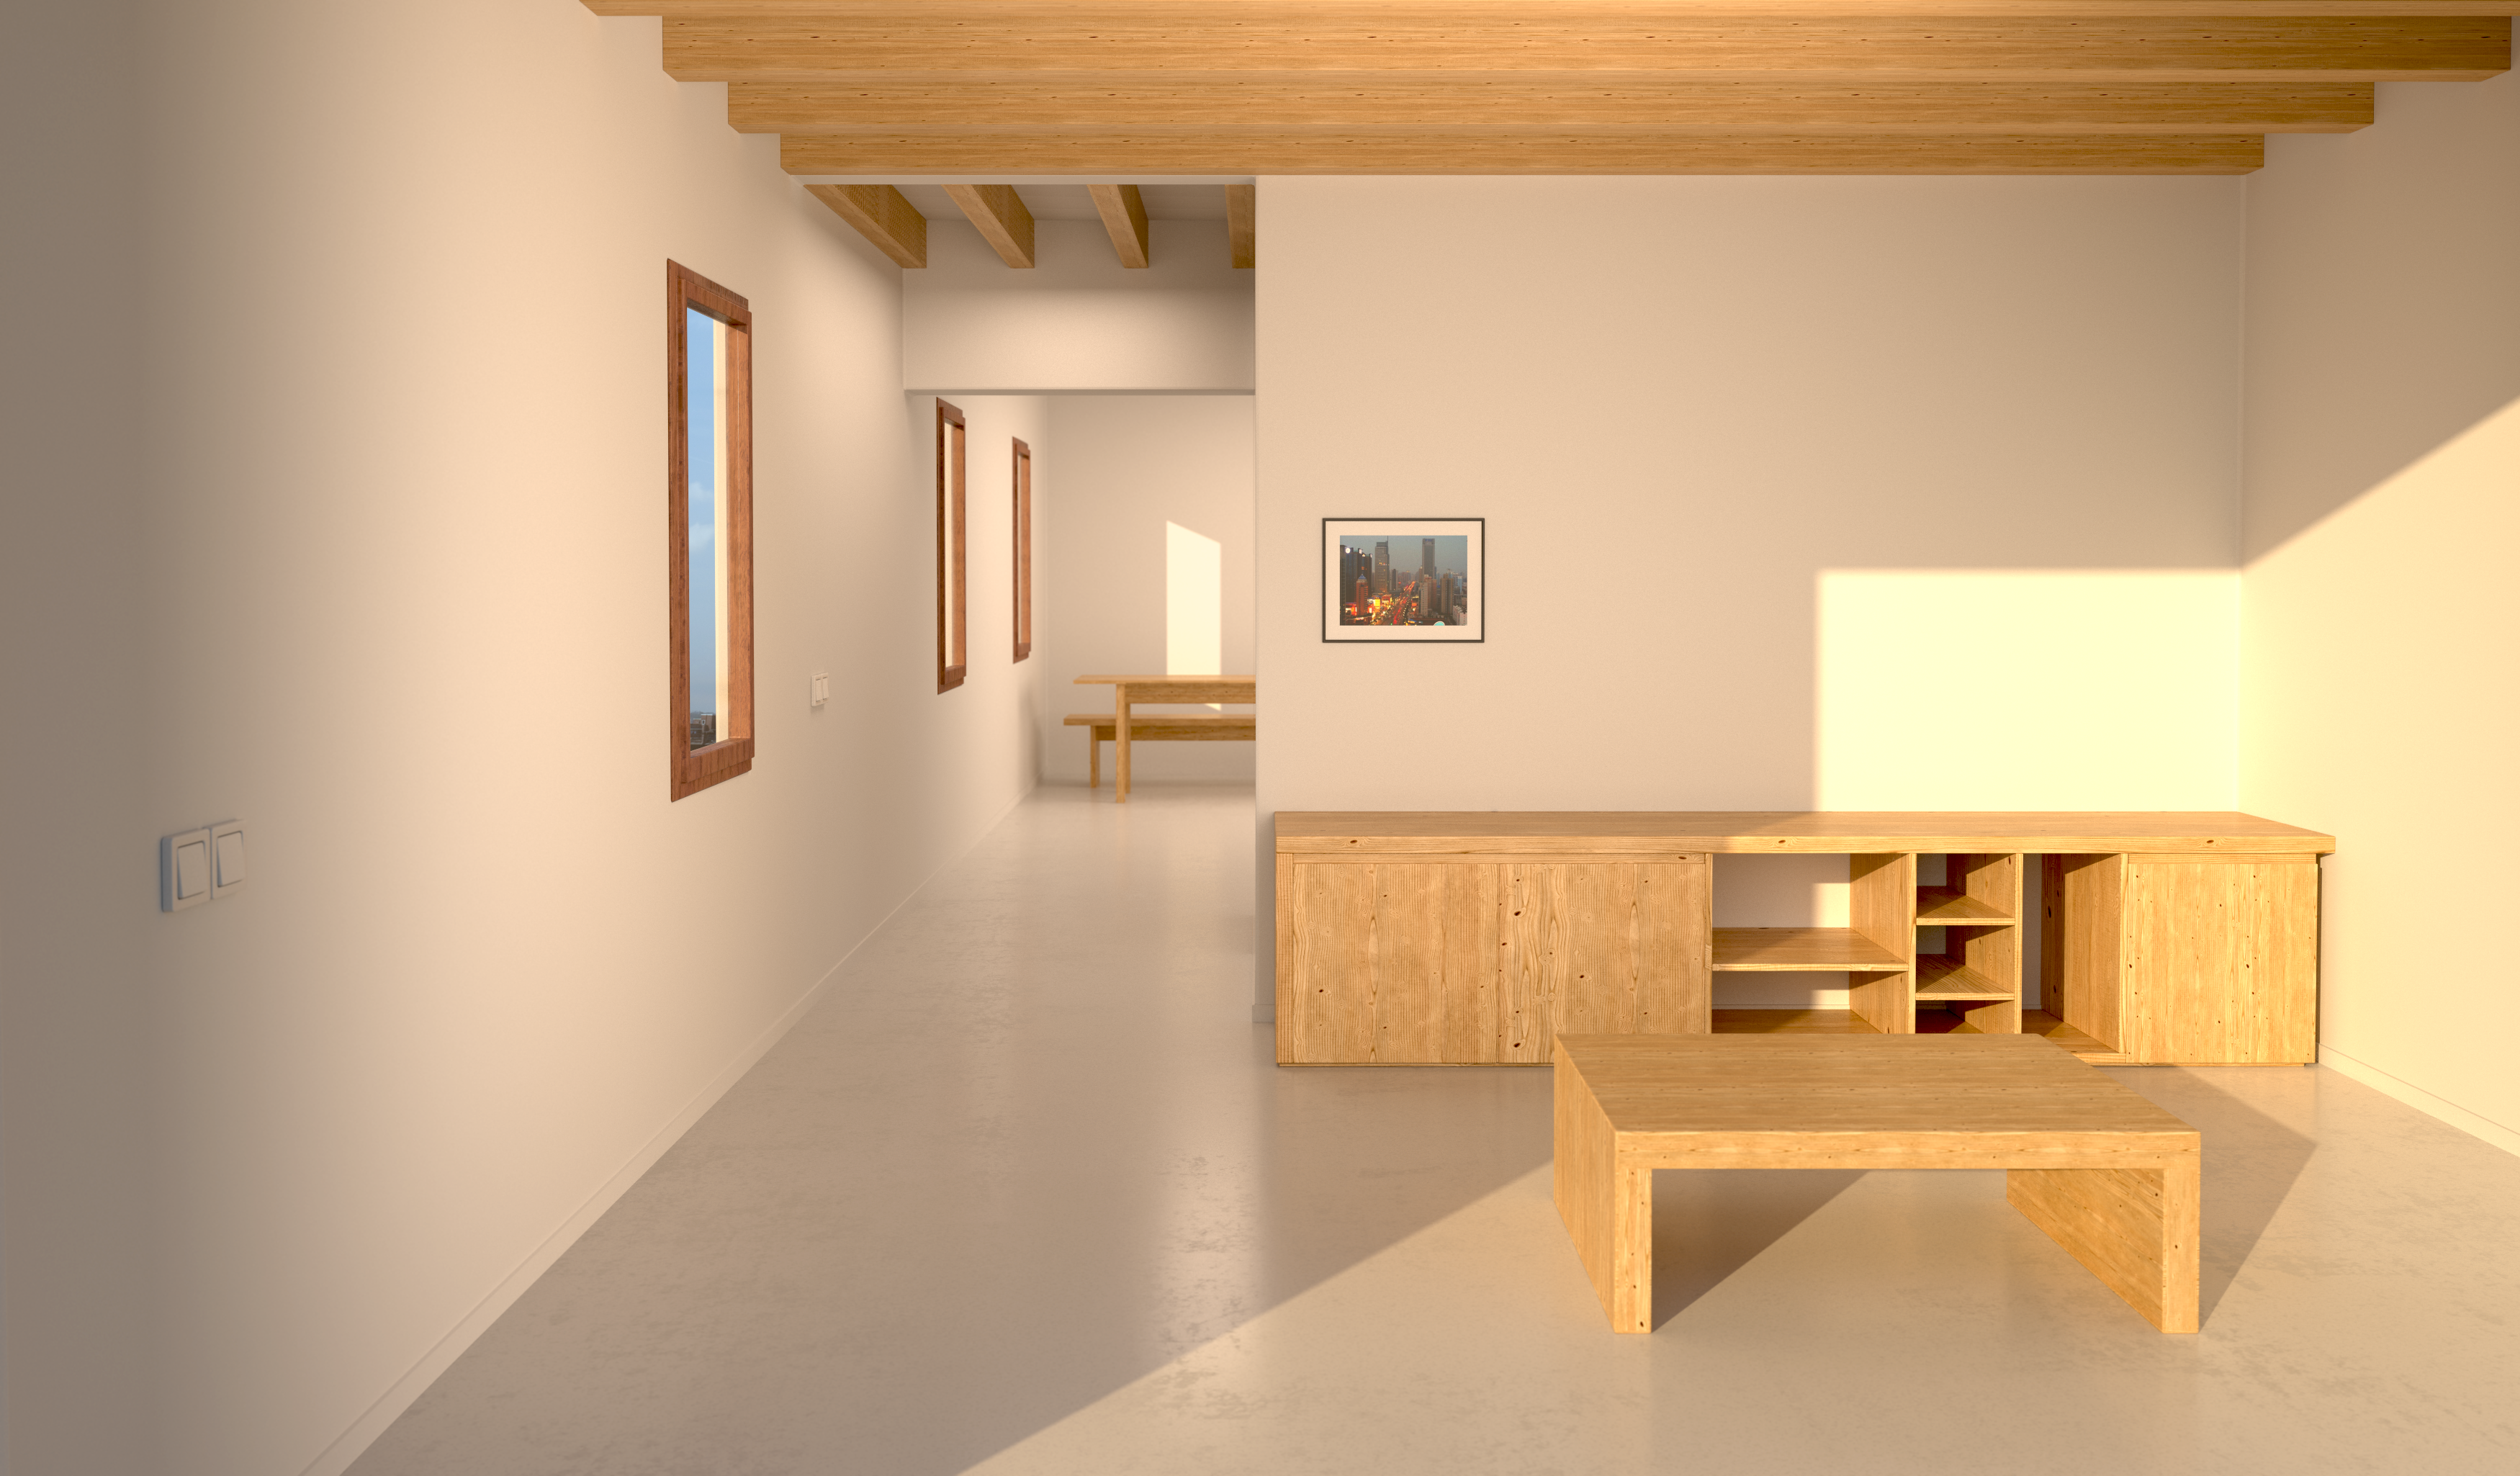 sketchup archives | 3d graphicdesign3d graphicdesign, Innenarchitektur ideen